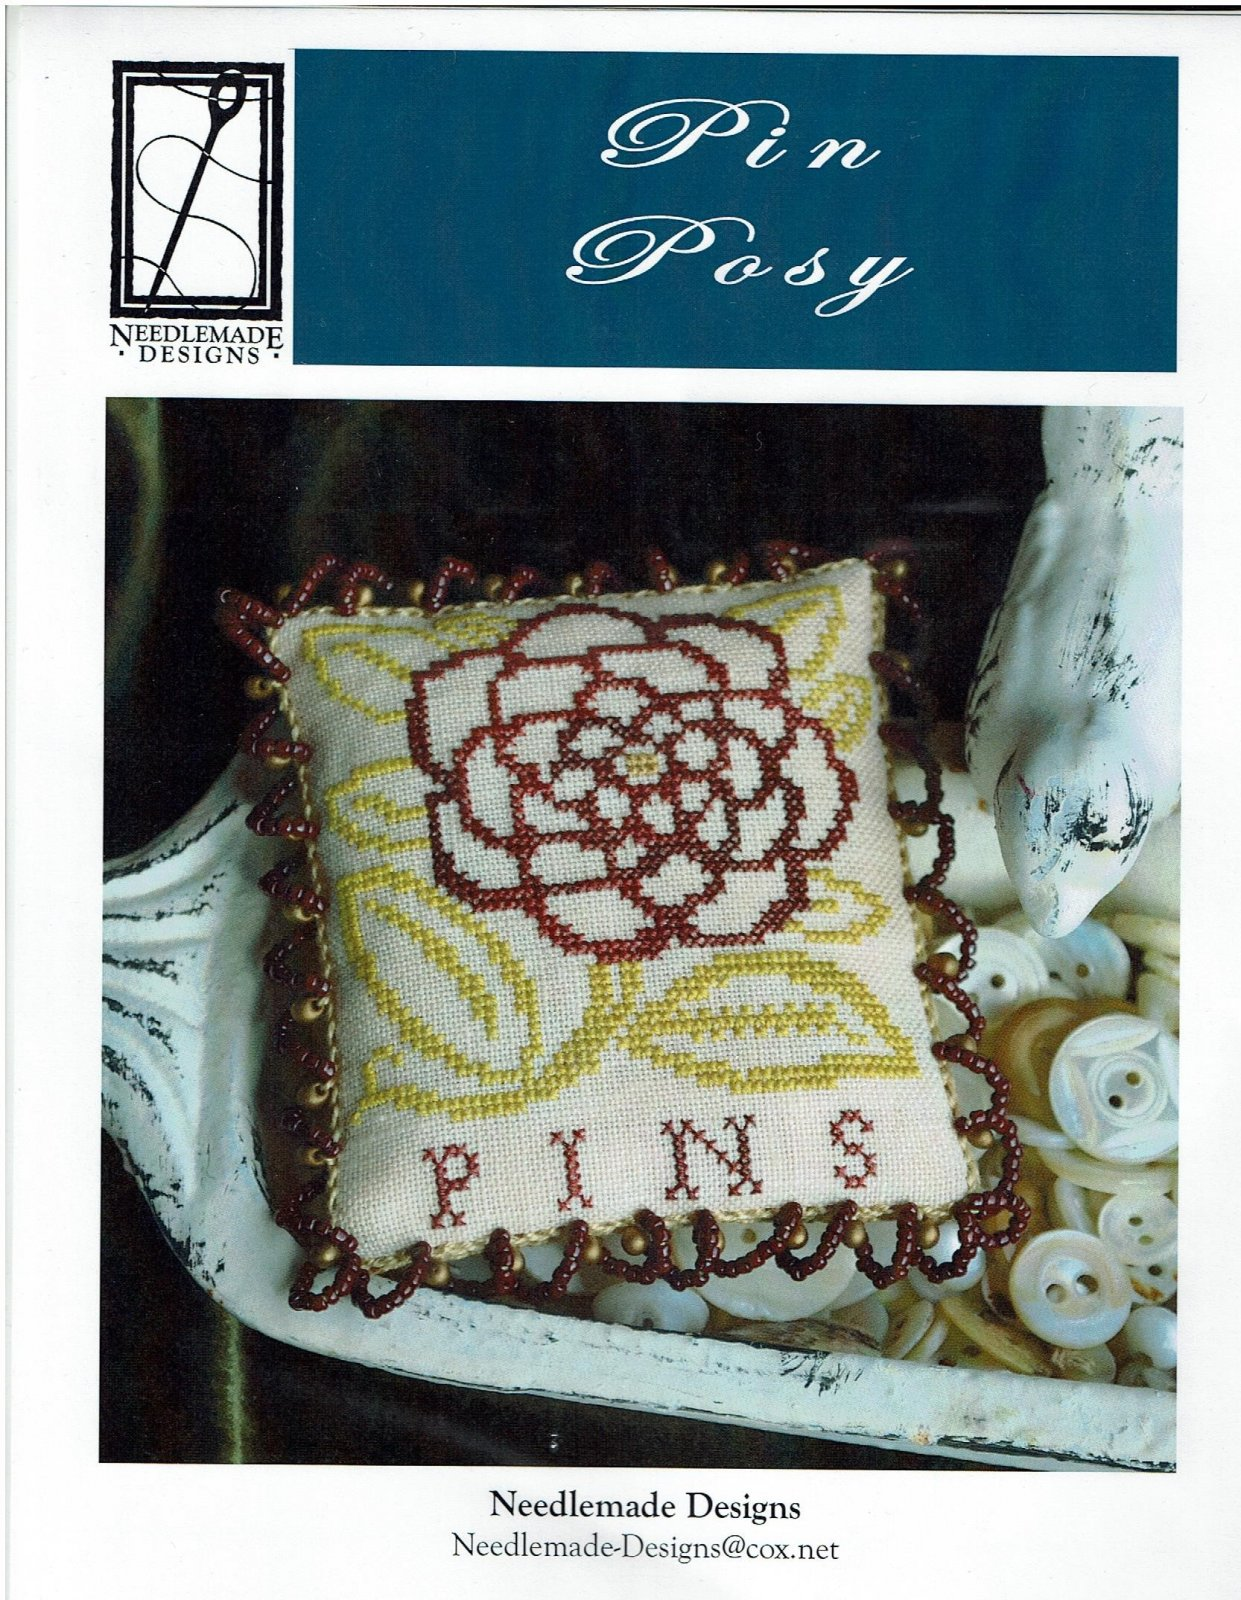 -9- 317 Pin Posy by Needlemade Designs